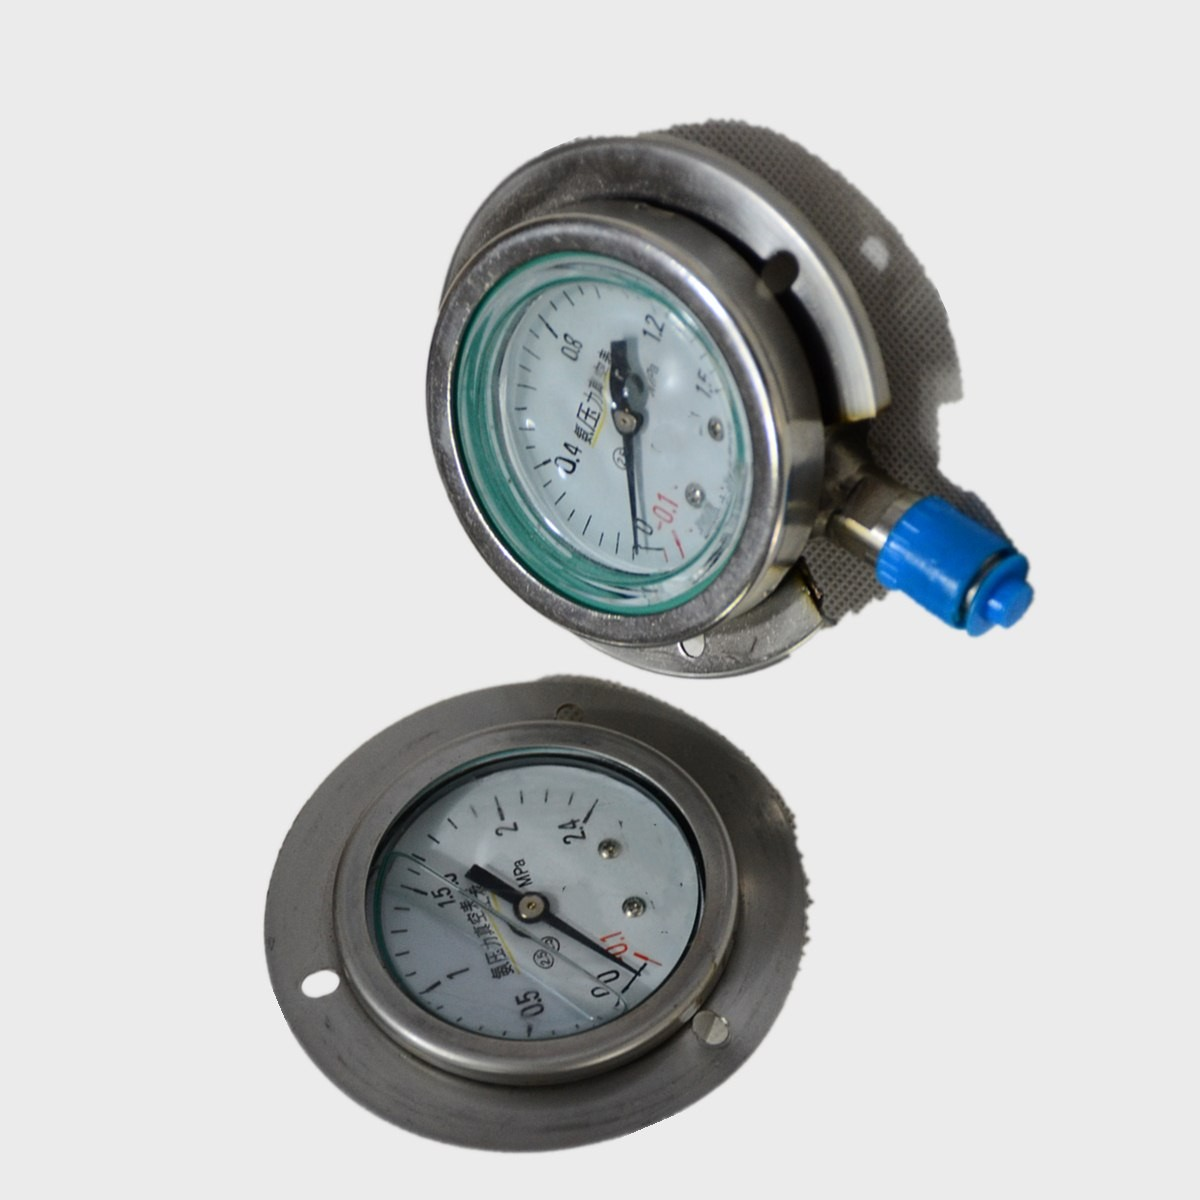 Ammonia belt side seismic pressure gauge Manufacturers, Ammonia belt side seismic pressure gauge Factory, Supply Ammonia belt side seismic pressure gauge